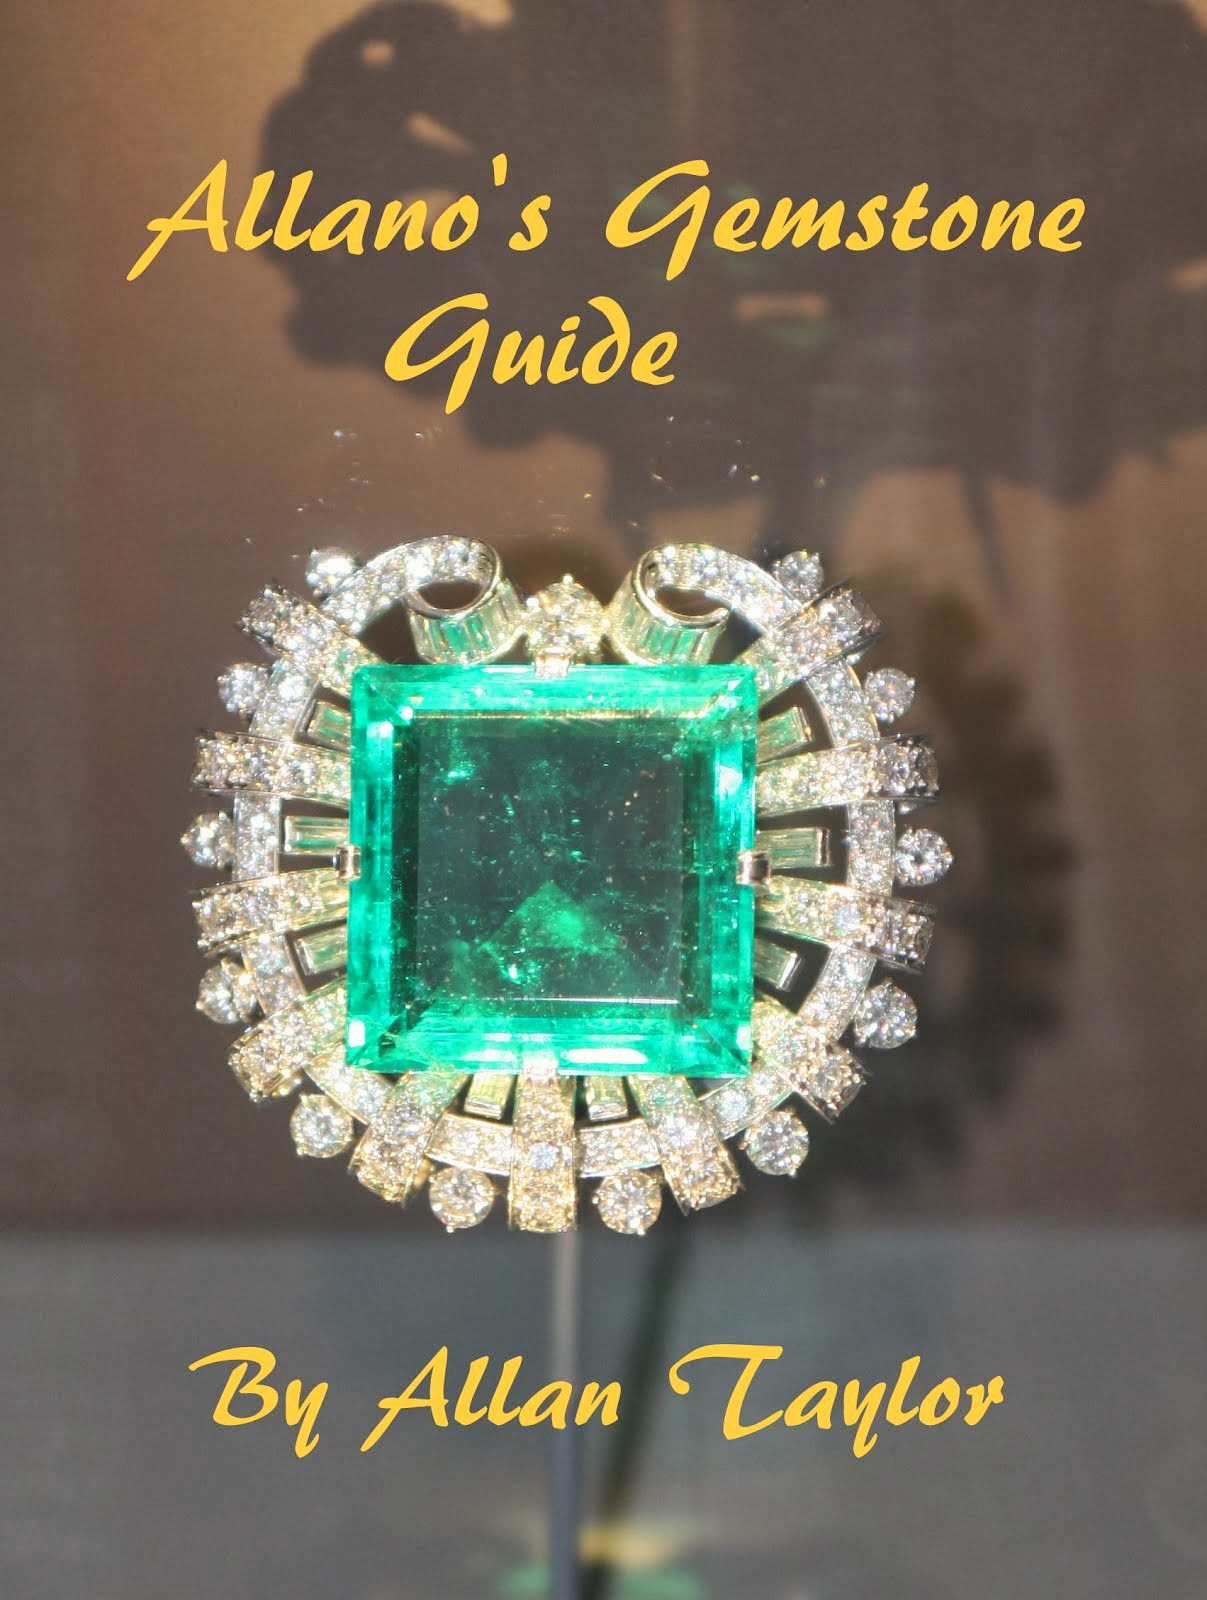 Gemstones from around the world are studied by Allano